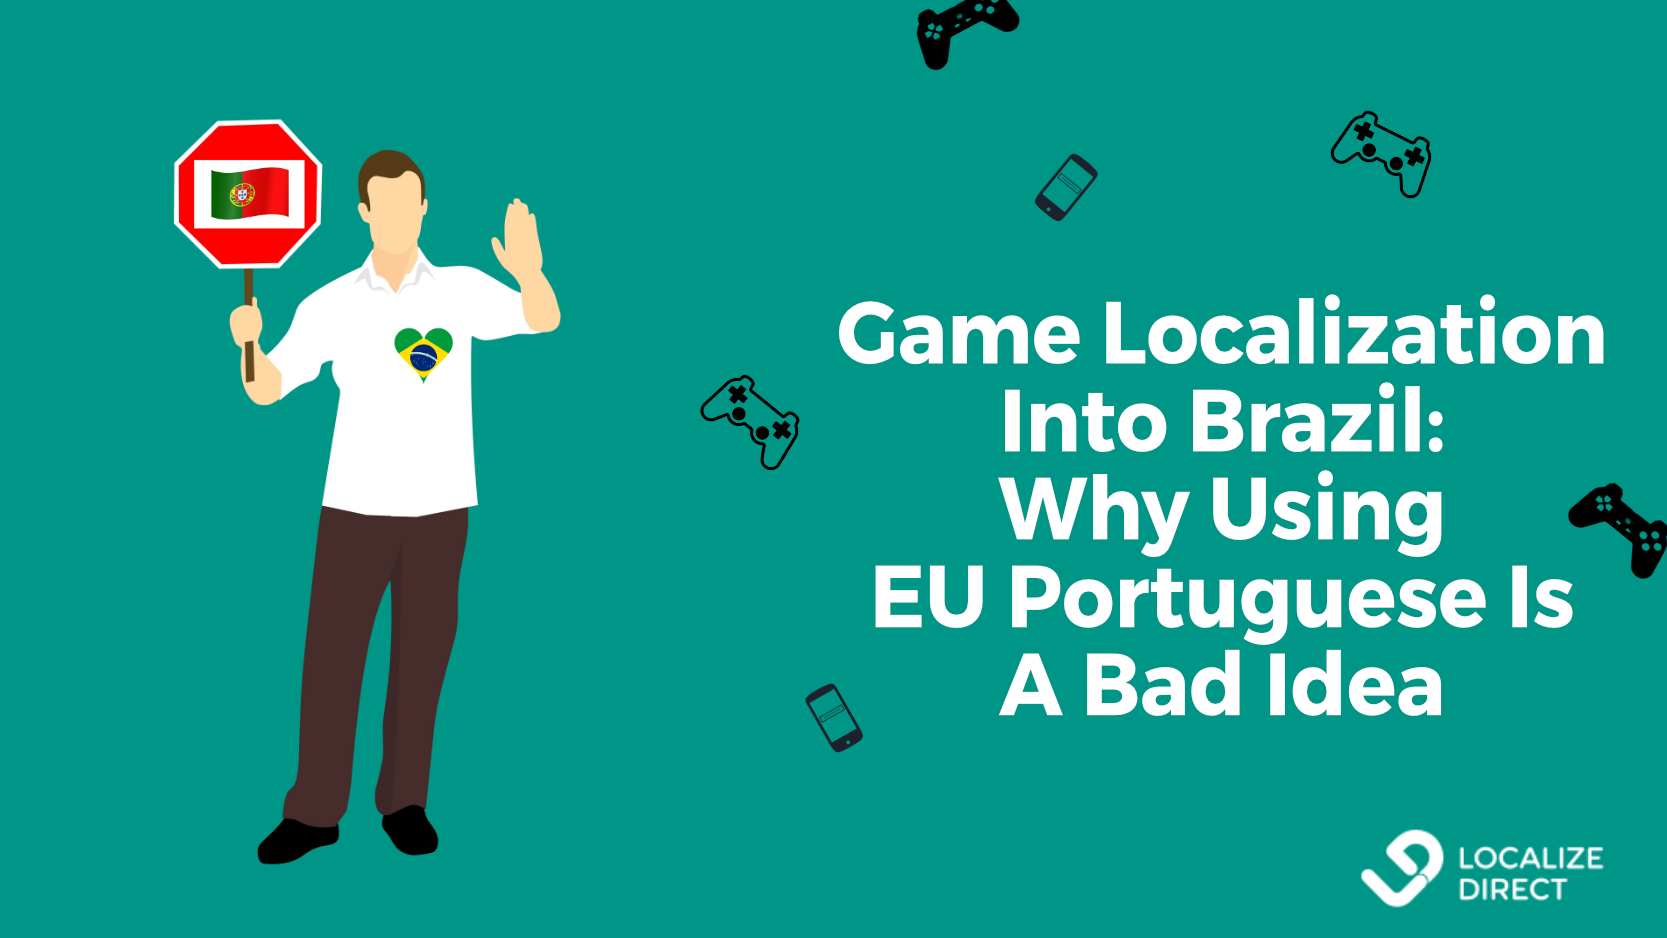 Game Localization Into Brazil: Why Using EU Portuguese Is A Bad Idea (+ factsheet)